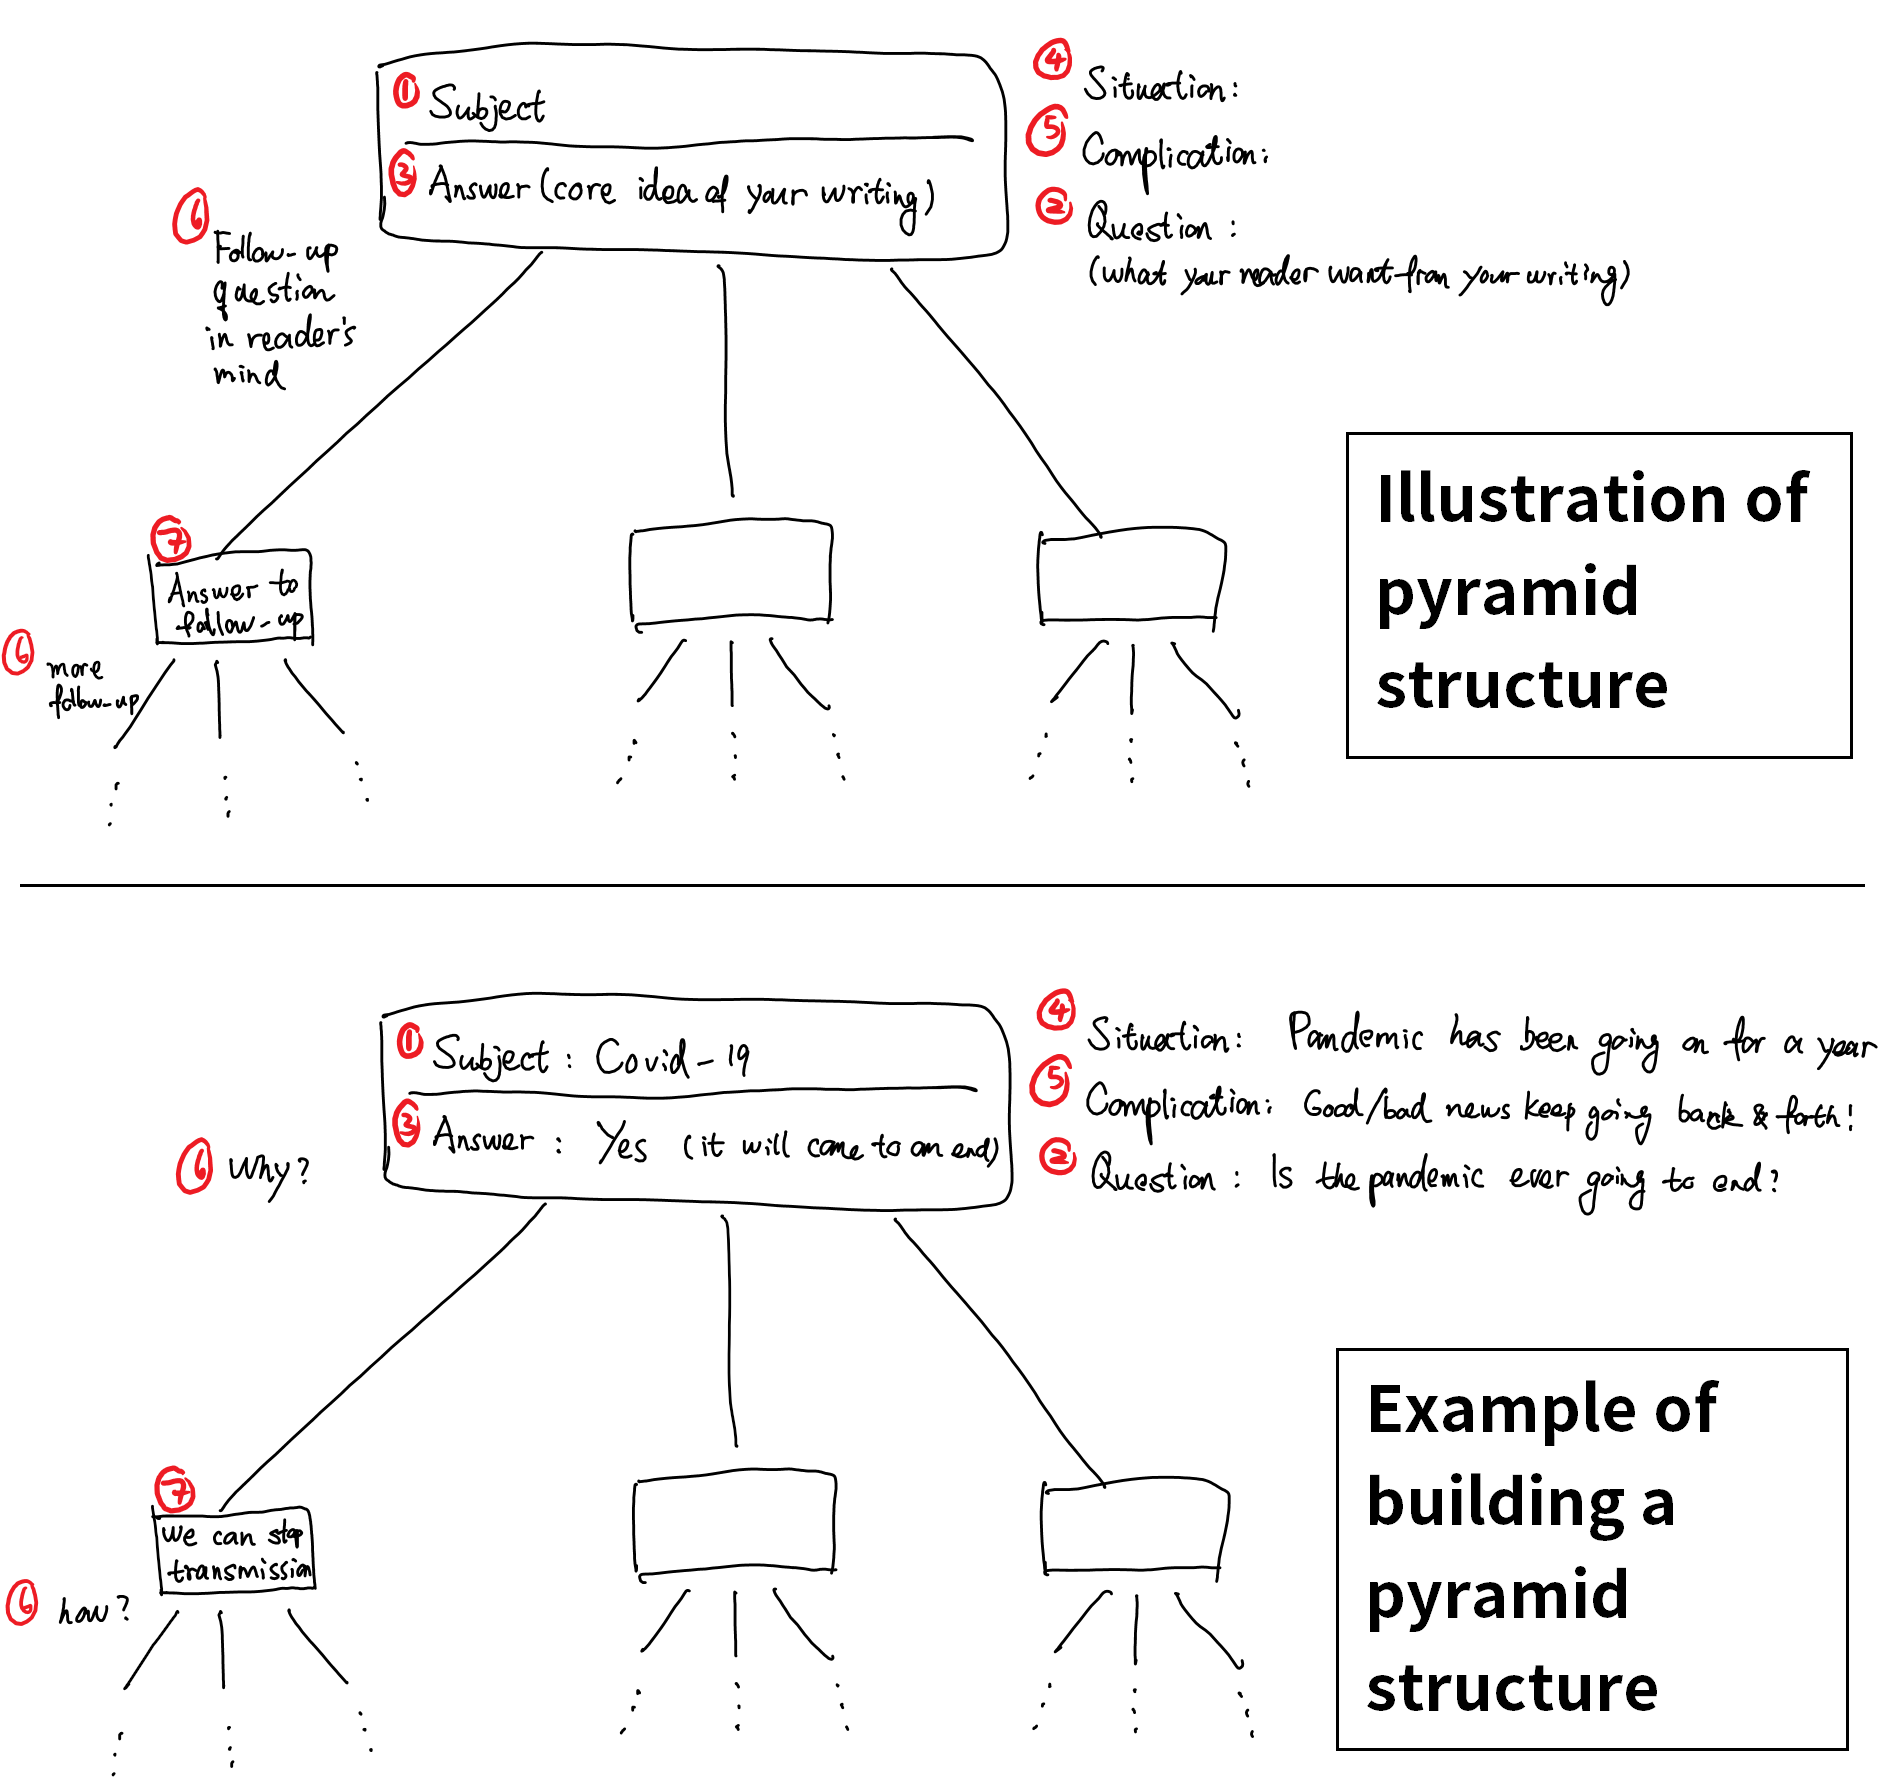 An illustration showing how to use the Pyramid Principle